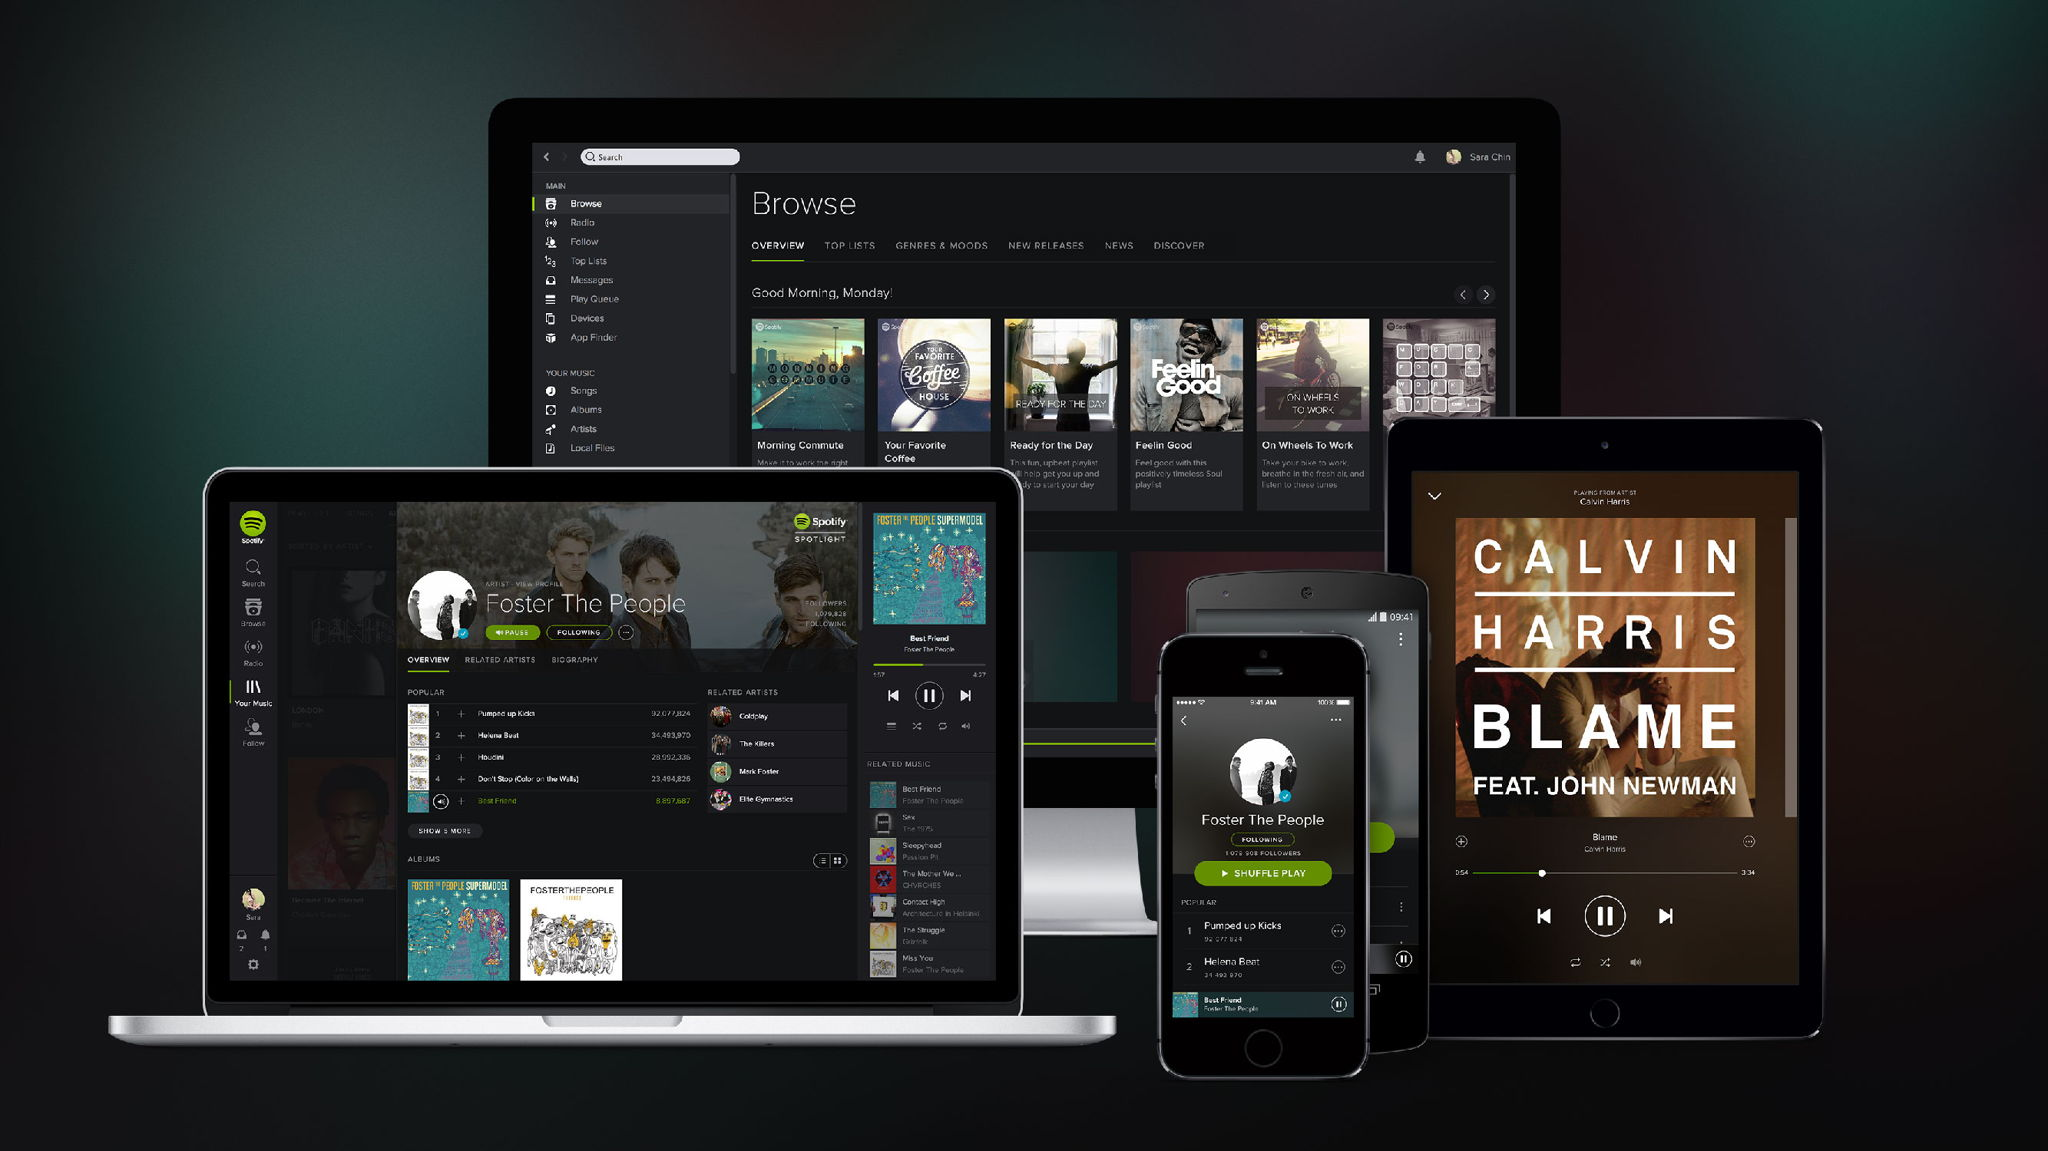 spotify-overview.jpg